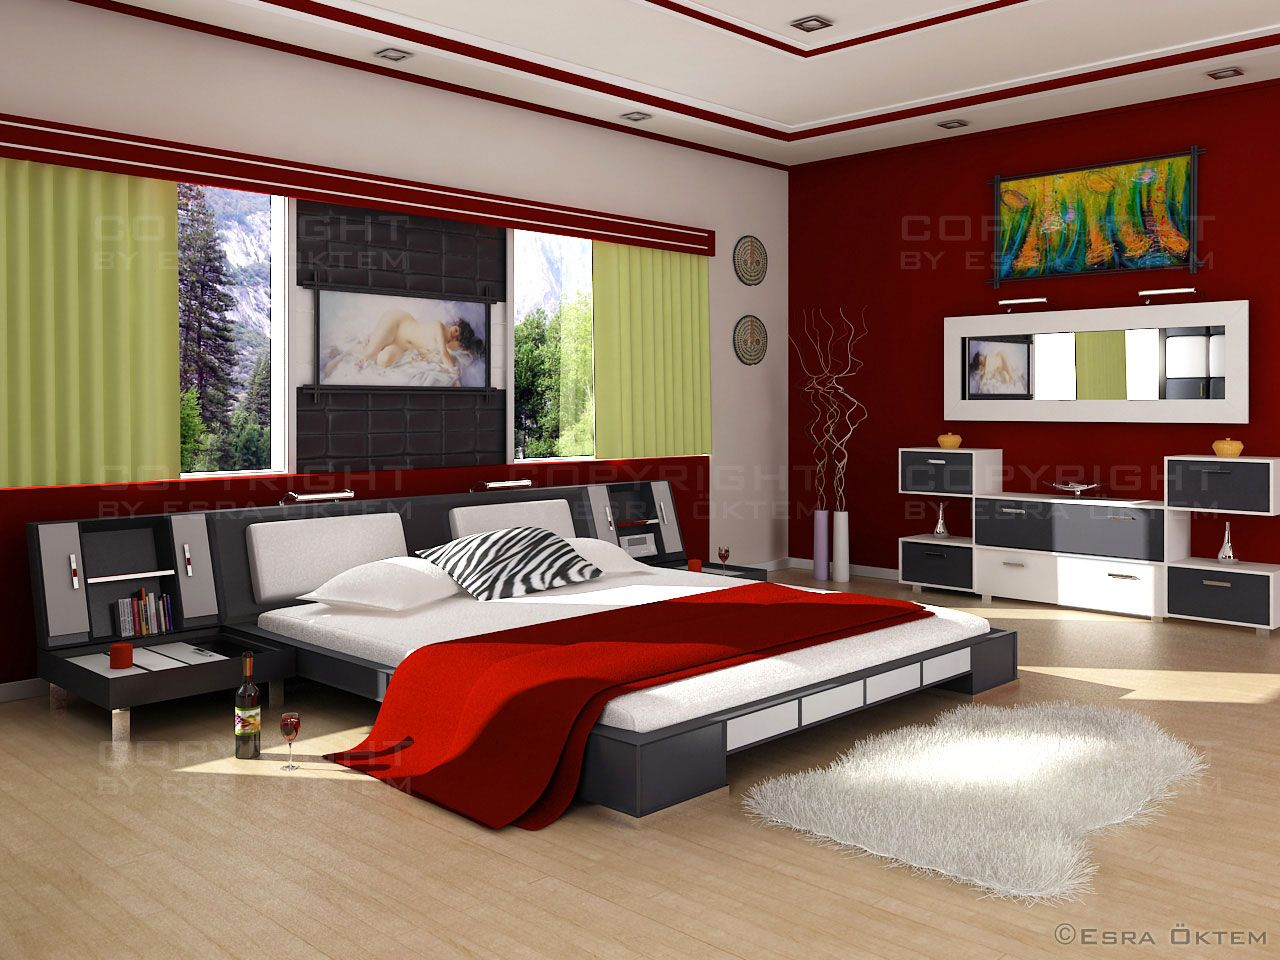 100 Must See Master Bedroom Ideas For Your Home Decor. Modern Bedroom DesignBedroom  Interior ...